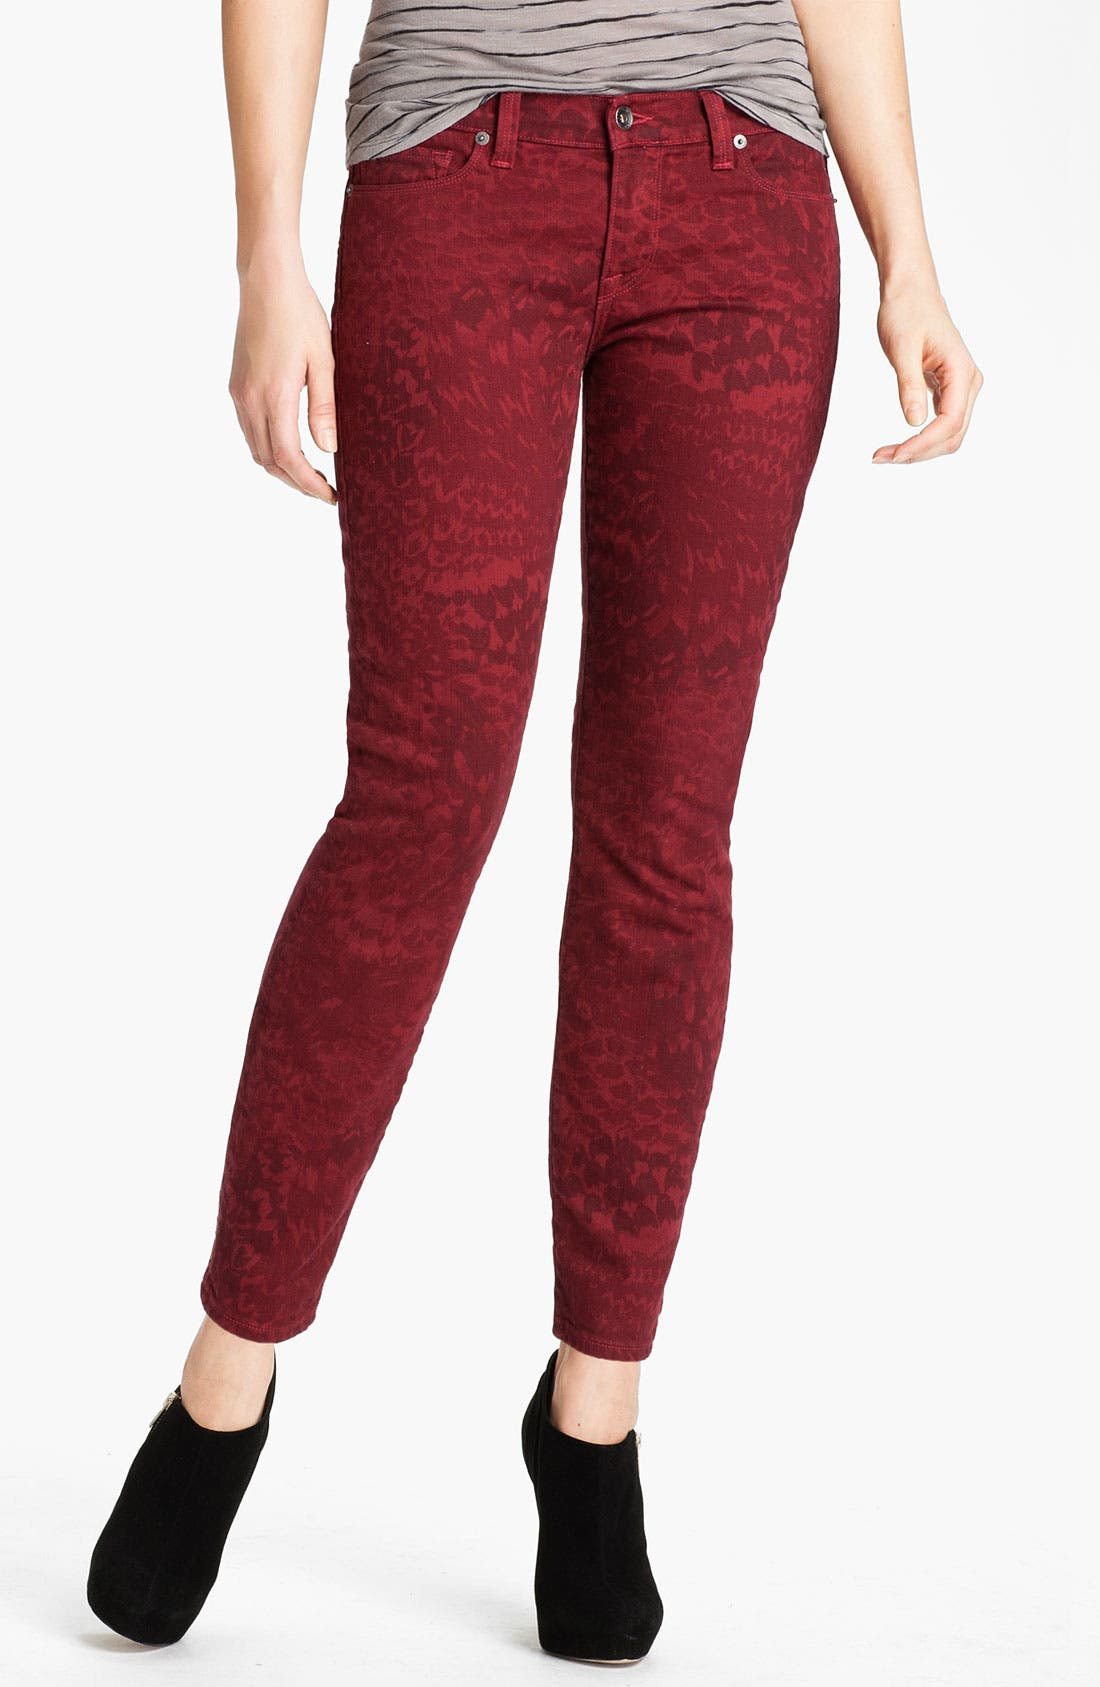 Main Image - Lucky Brand 'Legend Sofia' Skinny Print Jeans (Online Exclusive)